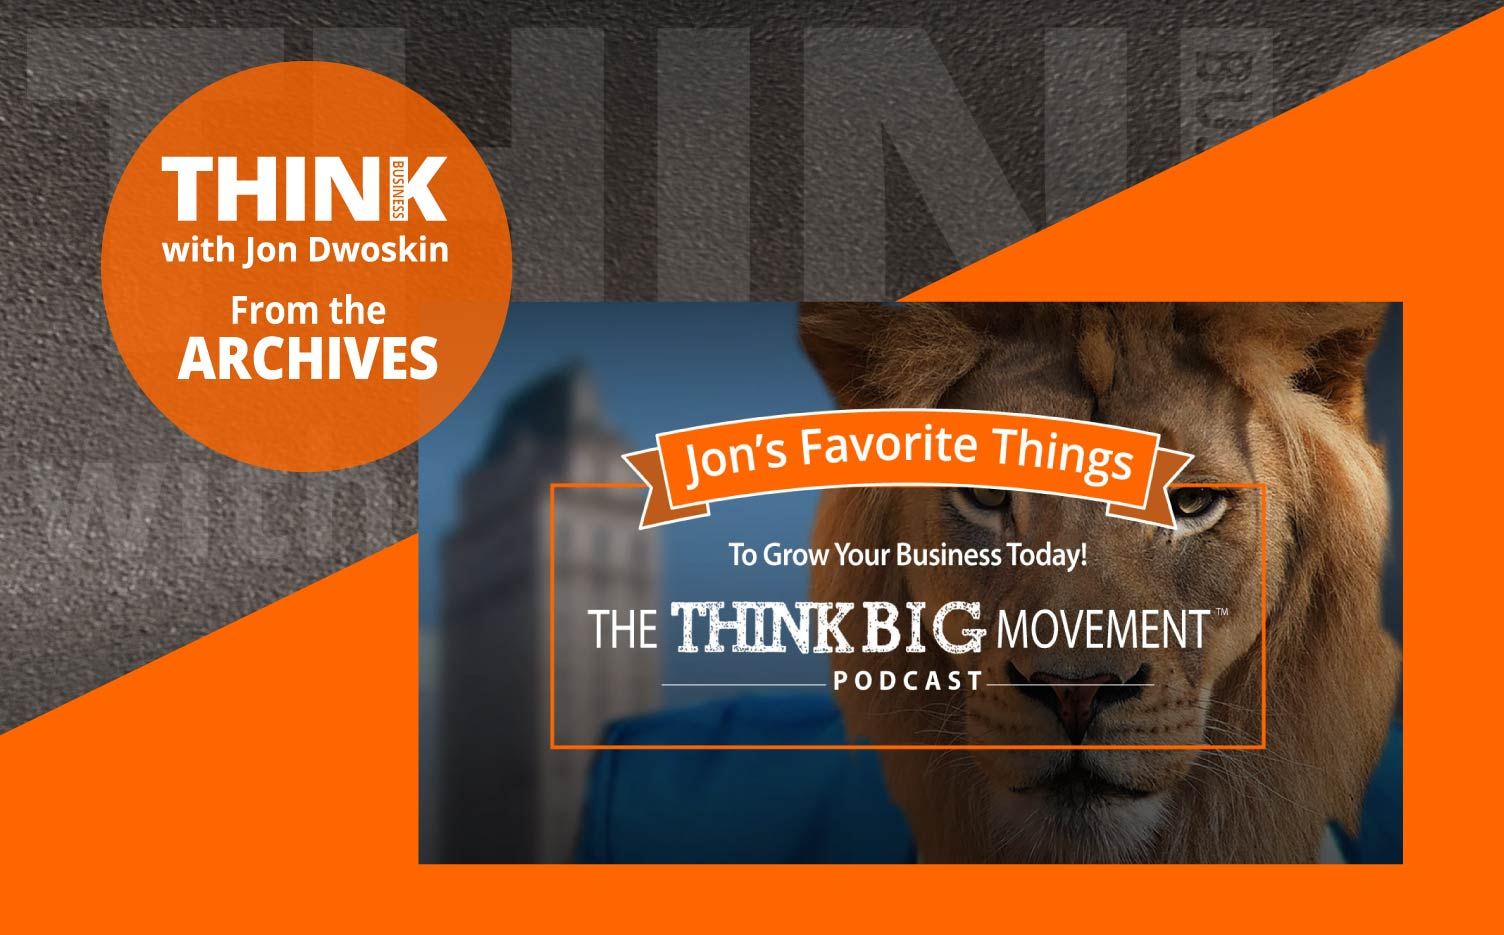 THINK Business Podcast